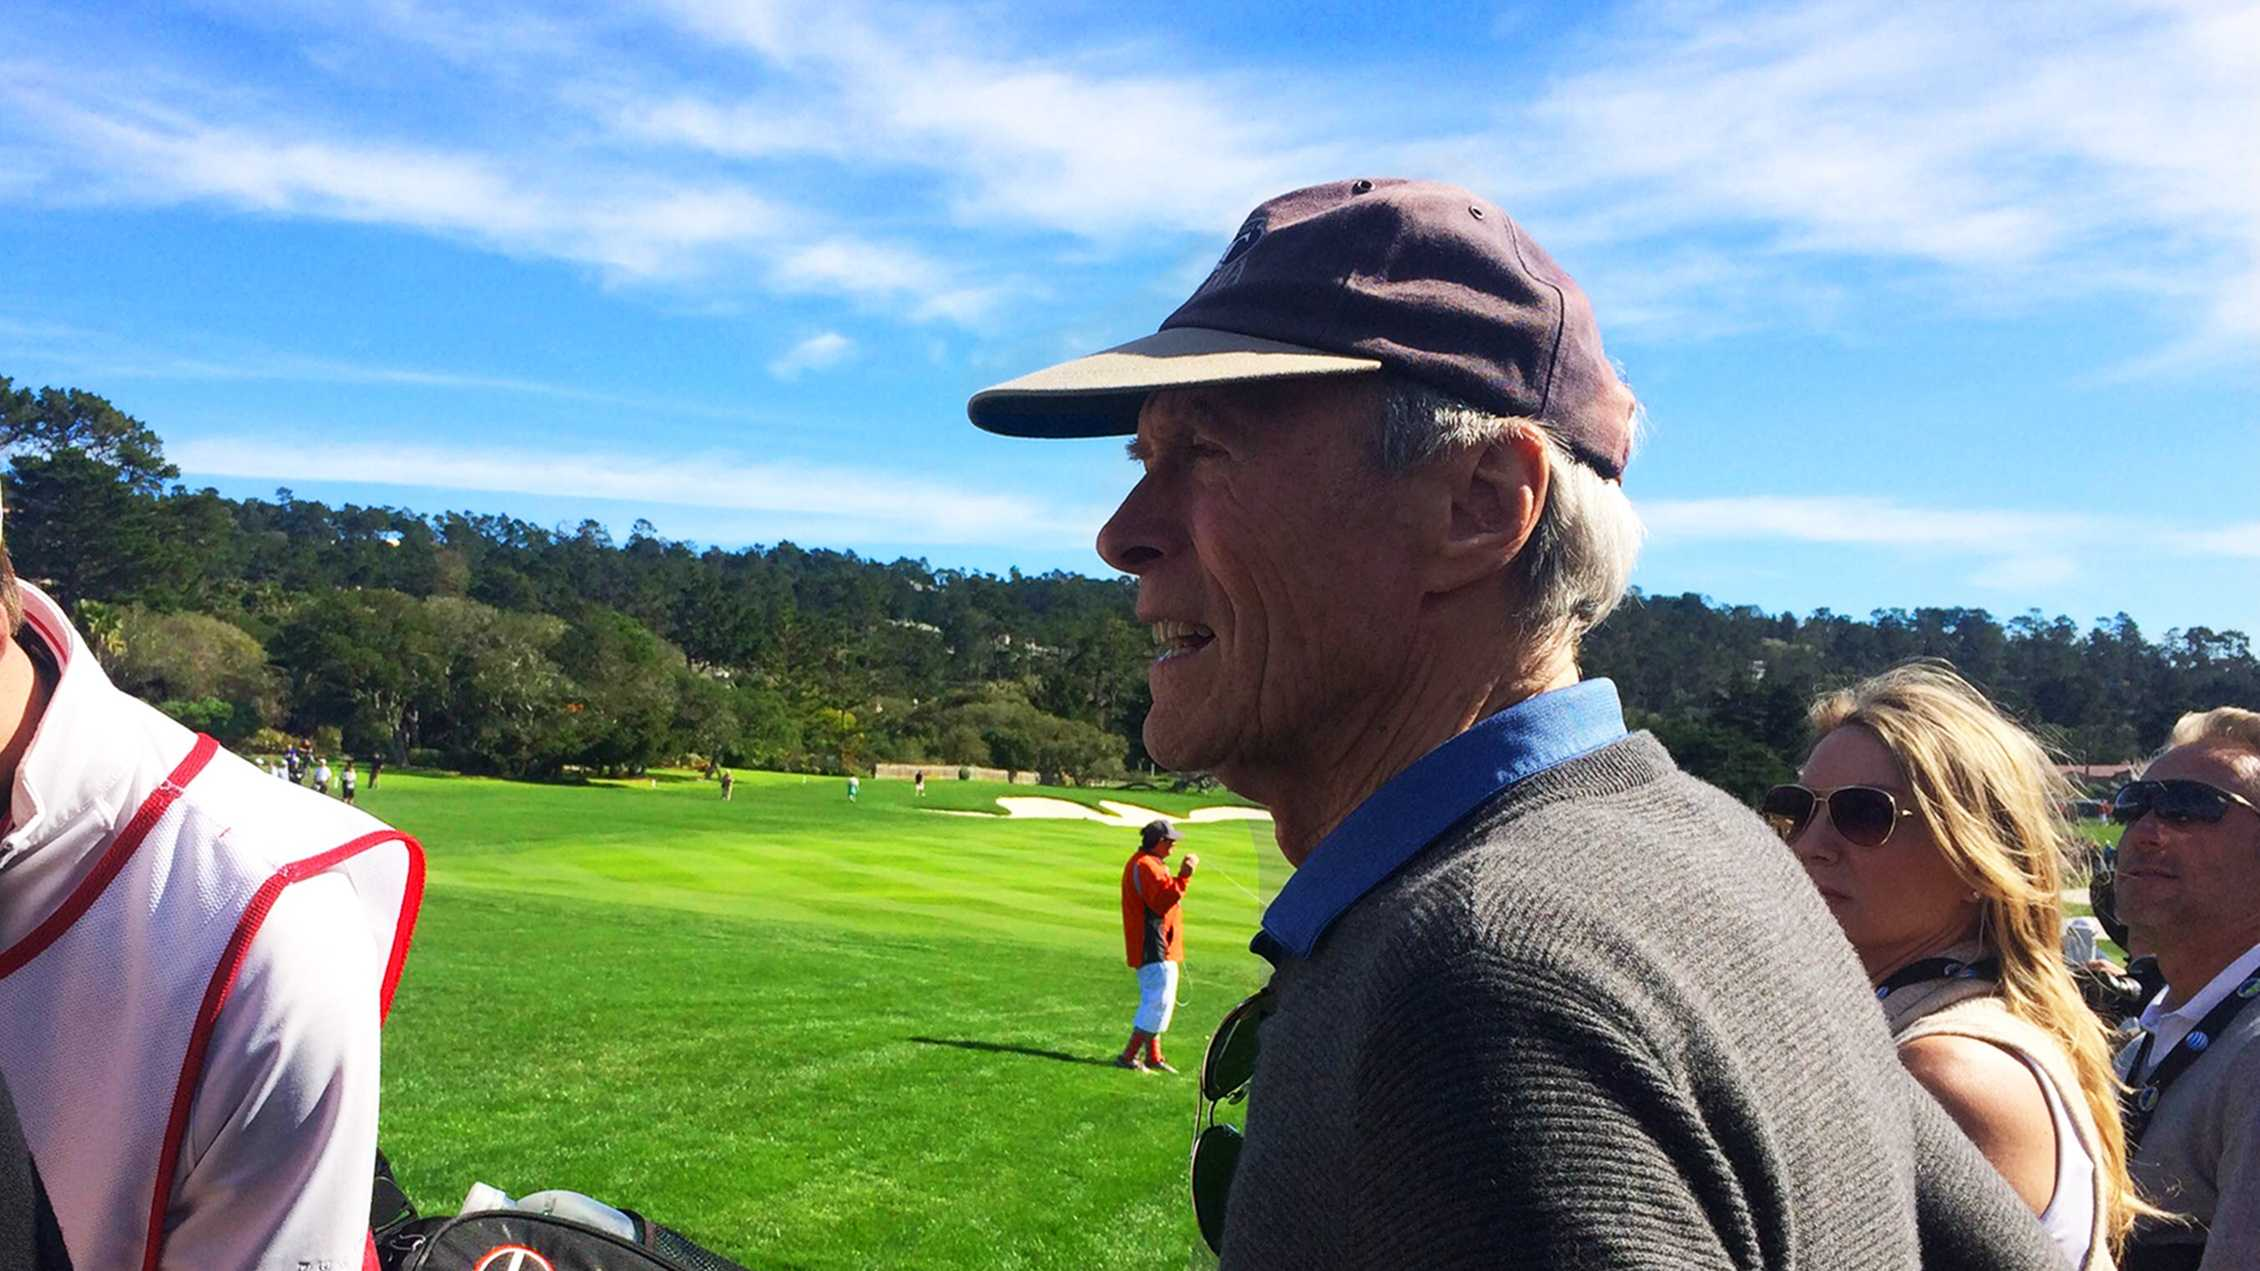 Clint Eastwood at the AT&T Pebble Beach National Pro-Am. (Feb. 2015)